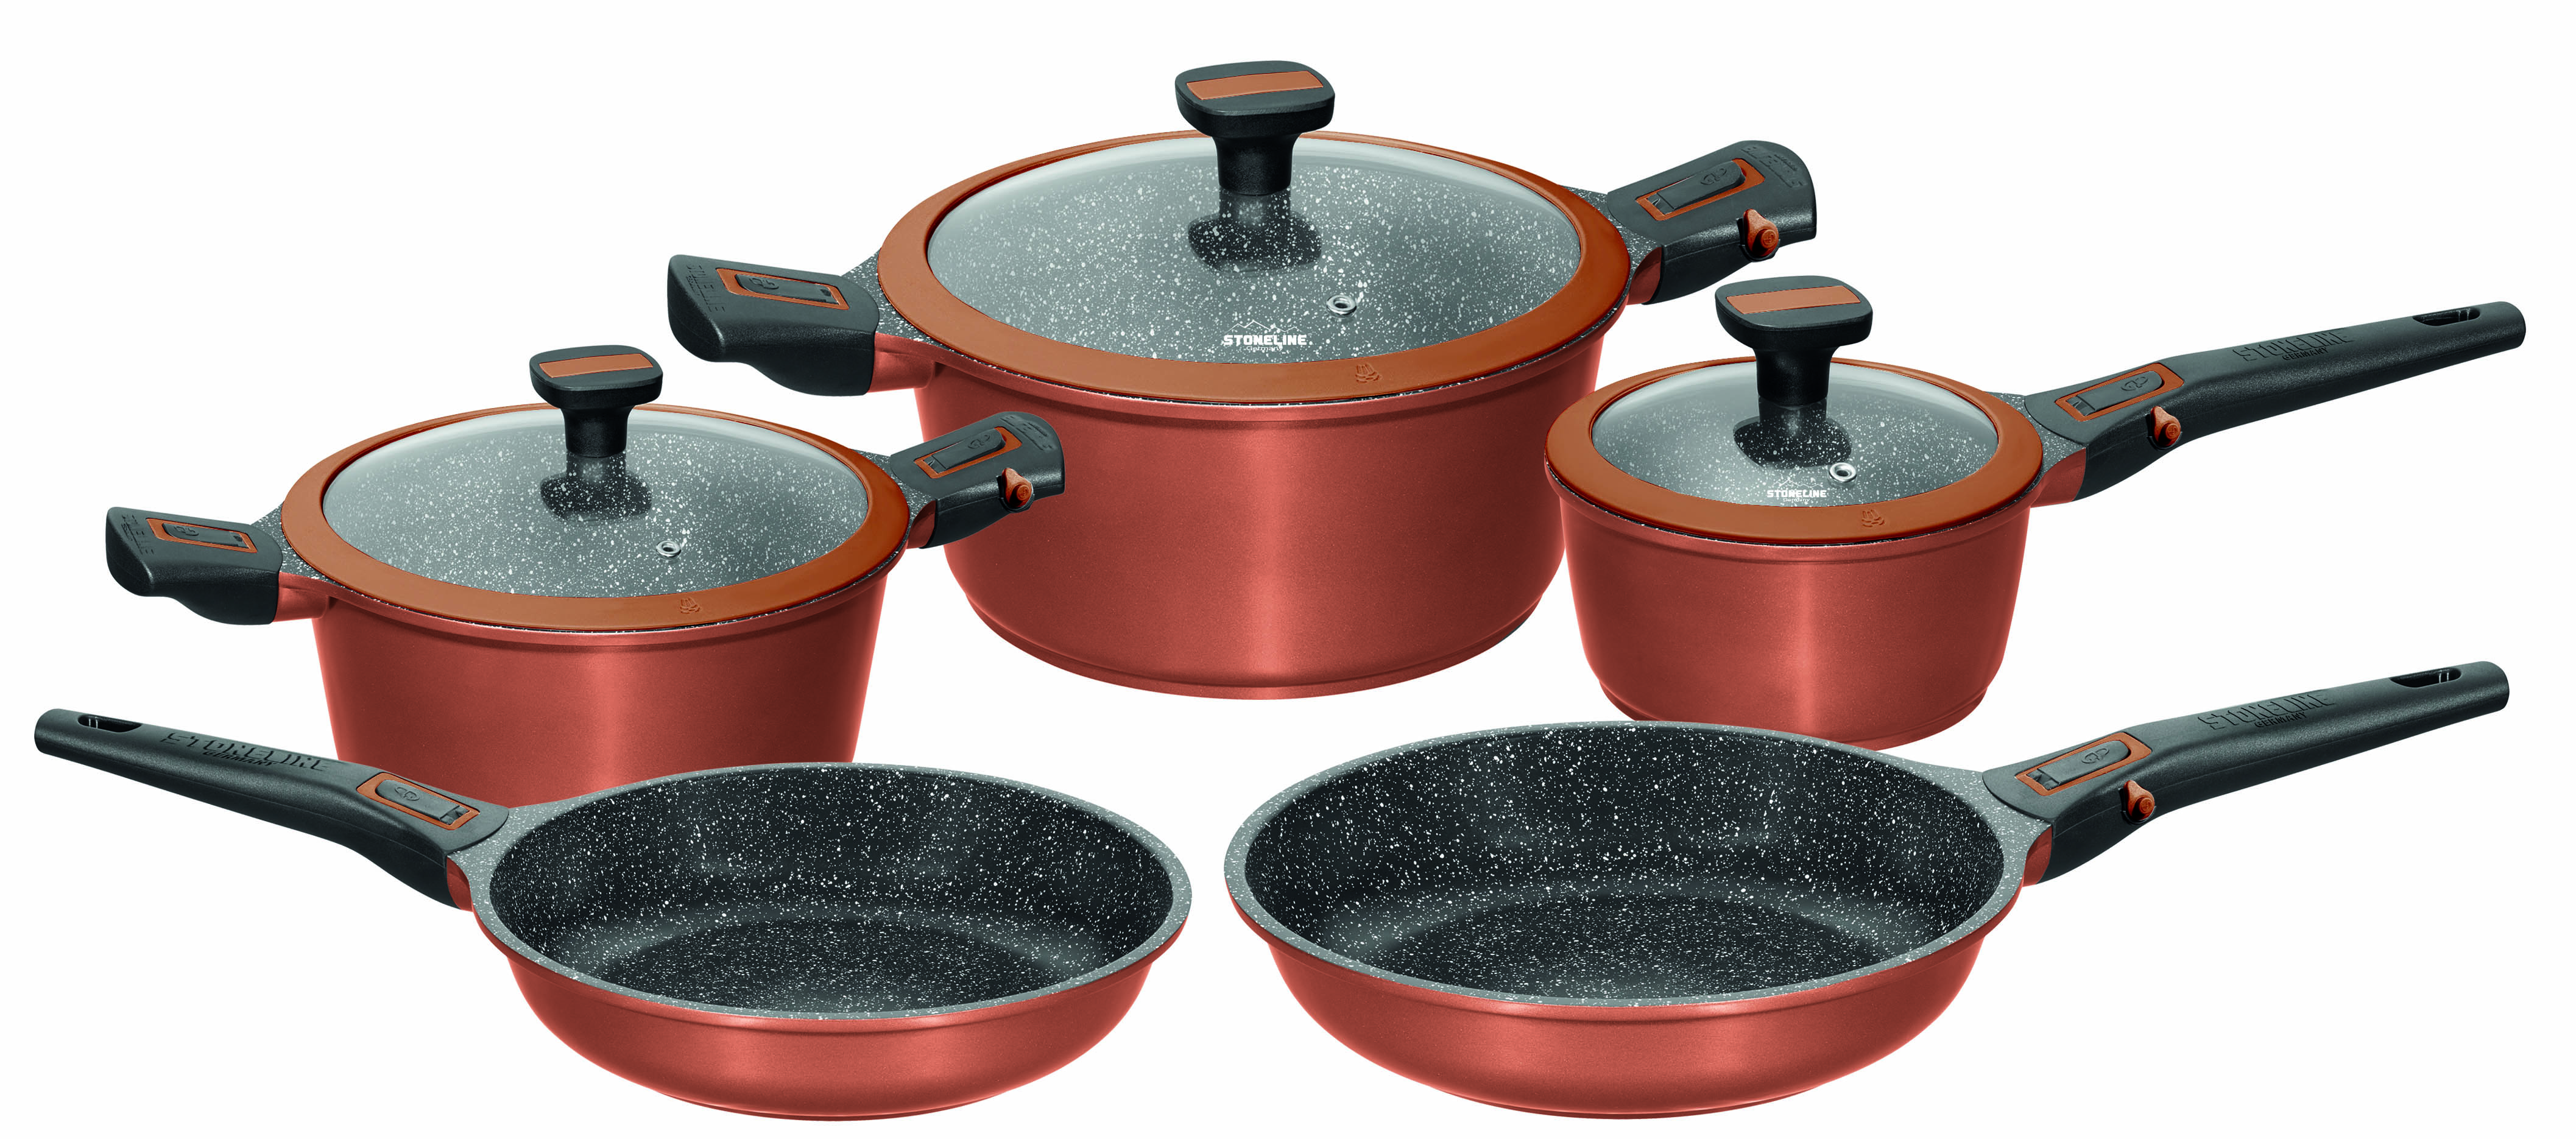 Stoneline 174 Imagination Plus Cookware Set Set Of 8 With